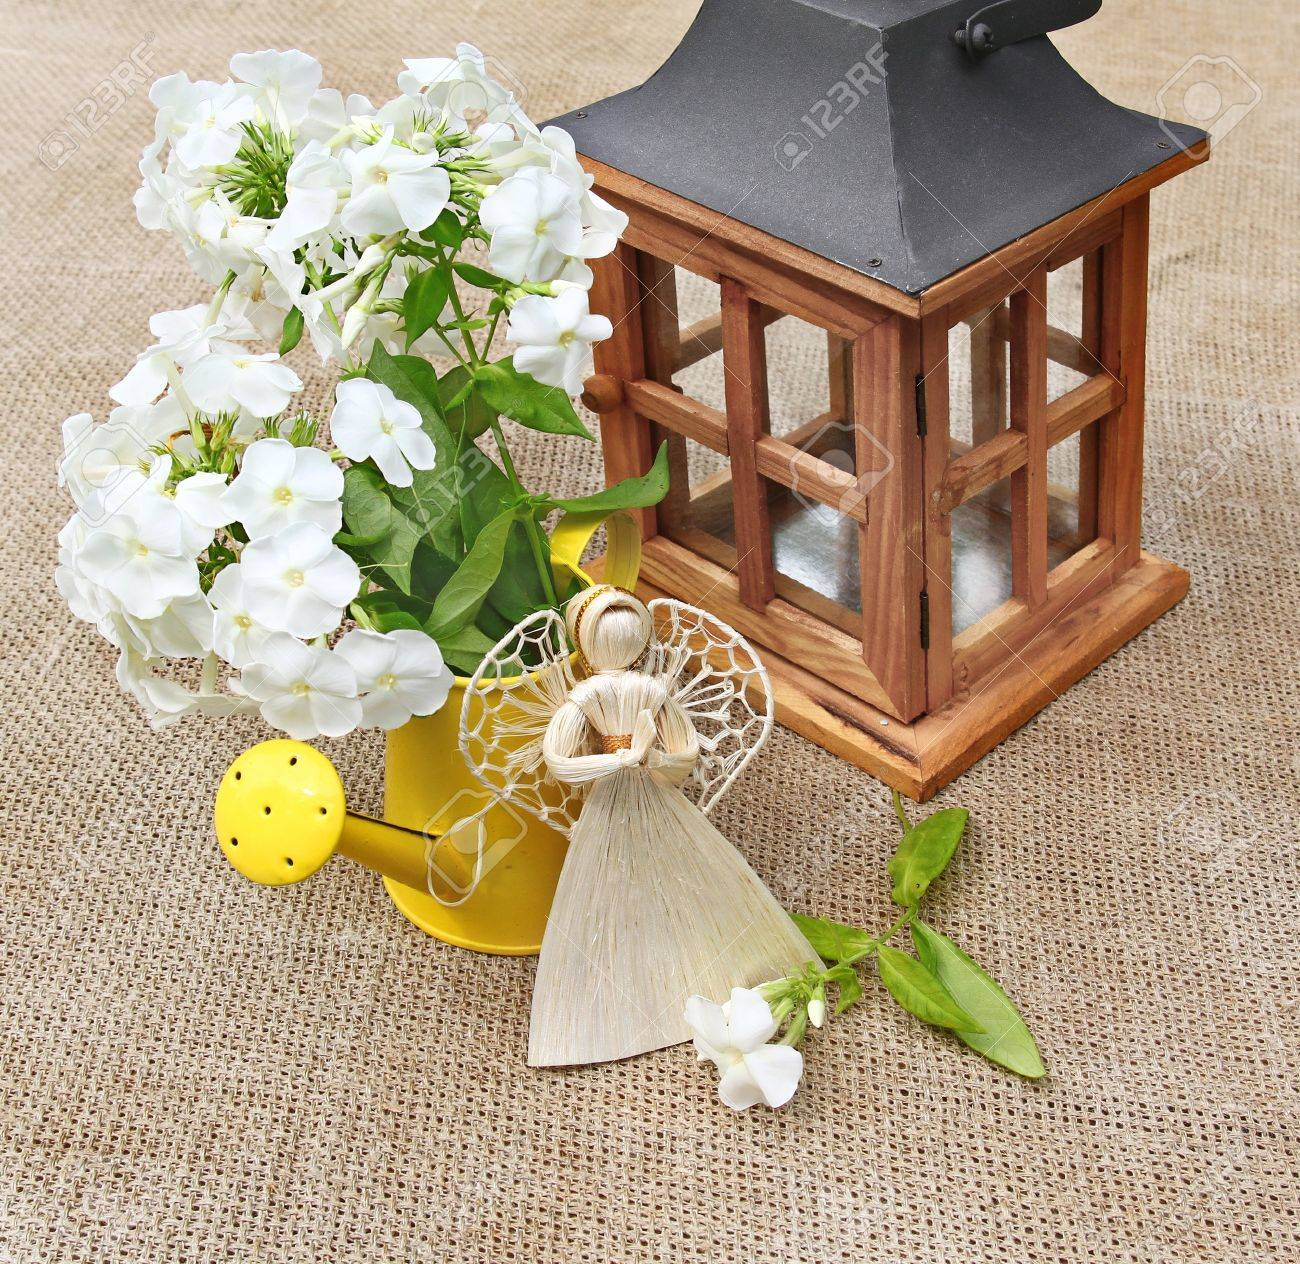 Composition From The Bouquet Of White Phloxes, Wooden Lantern ... for Straw Lantern  193tgx